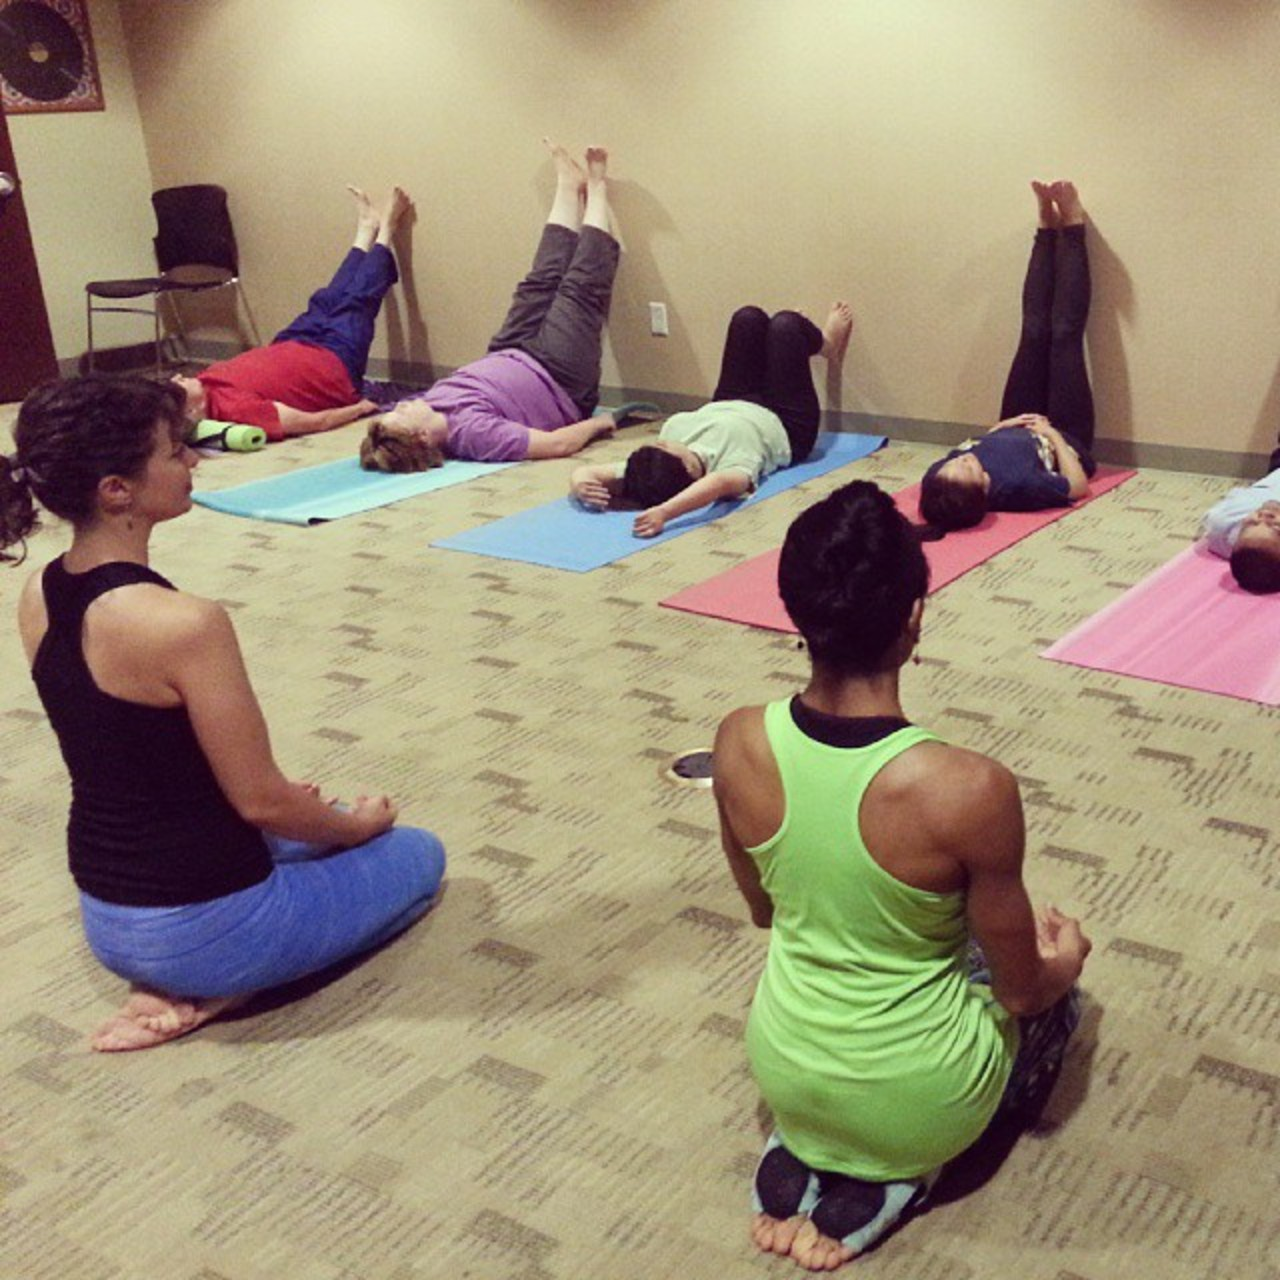 calistoga buddhist singles Our directory offers yoga, detox, and health retreats and spas for silent meditation, personal development and spiritual growth also, meeting space for groups.